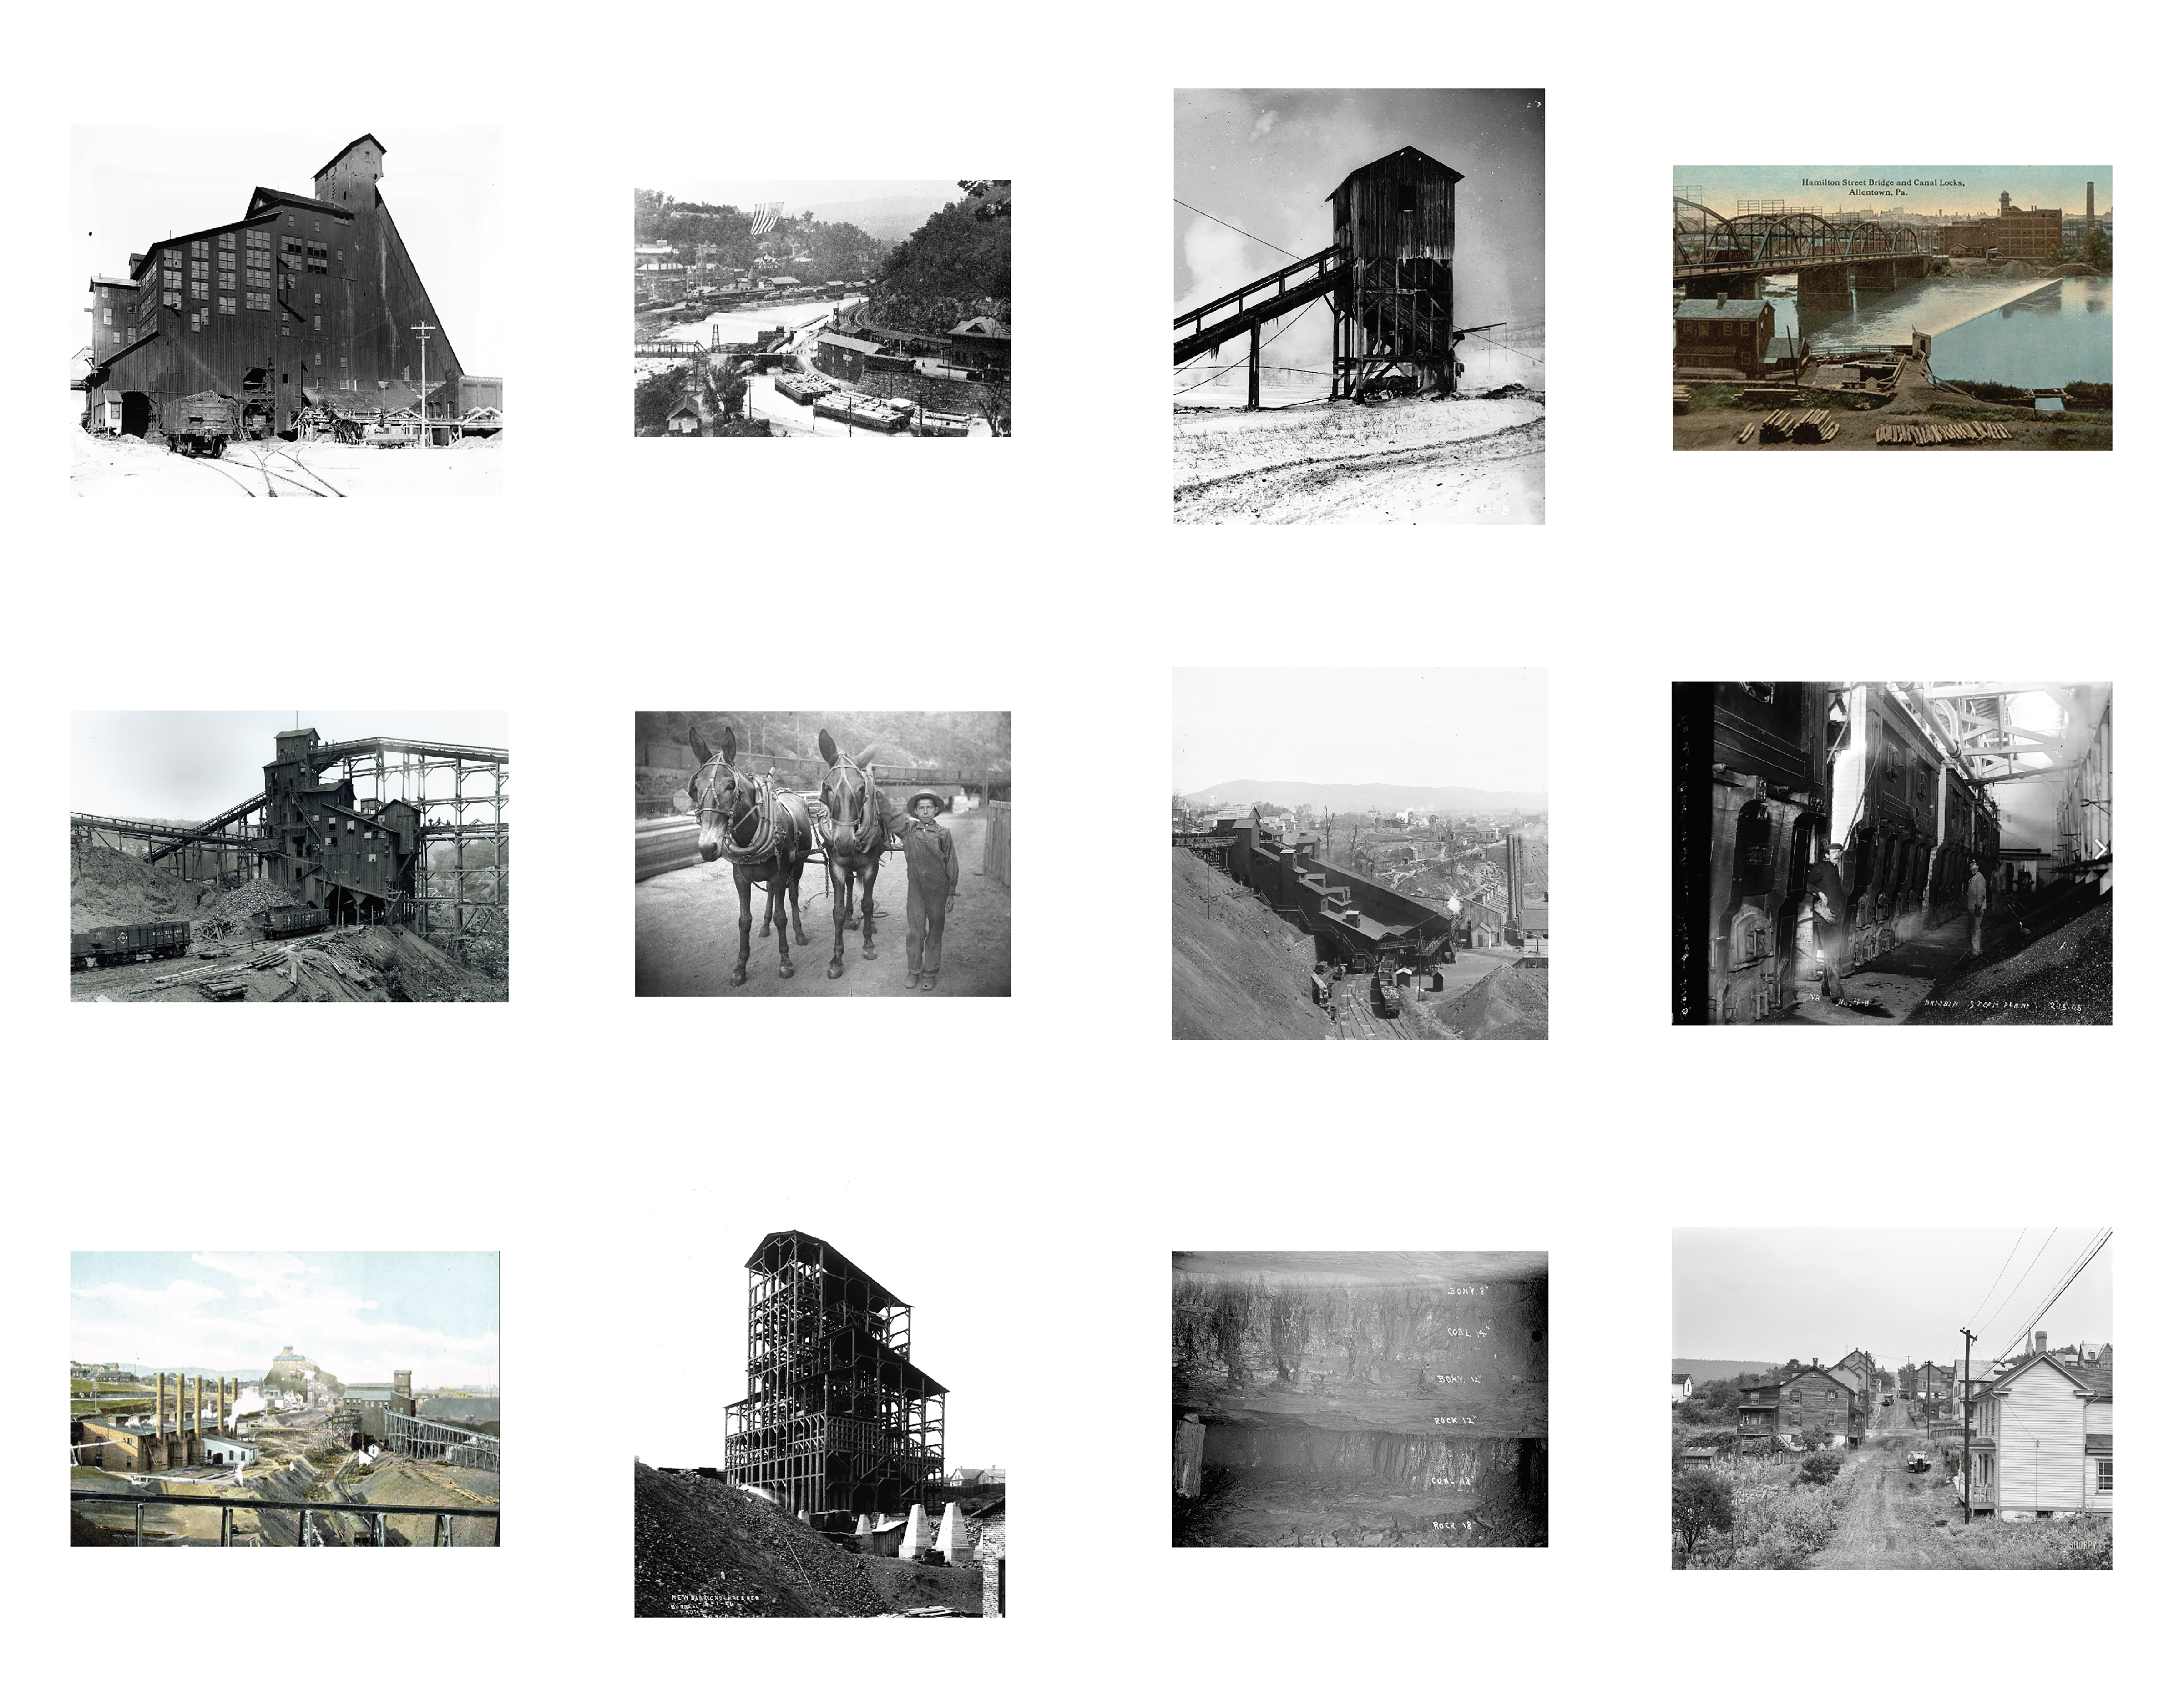 A grid of twelve photographs, mostly black and white, showing scenes related to 19th century coal production